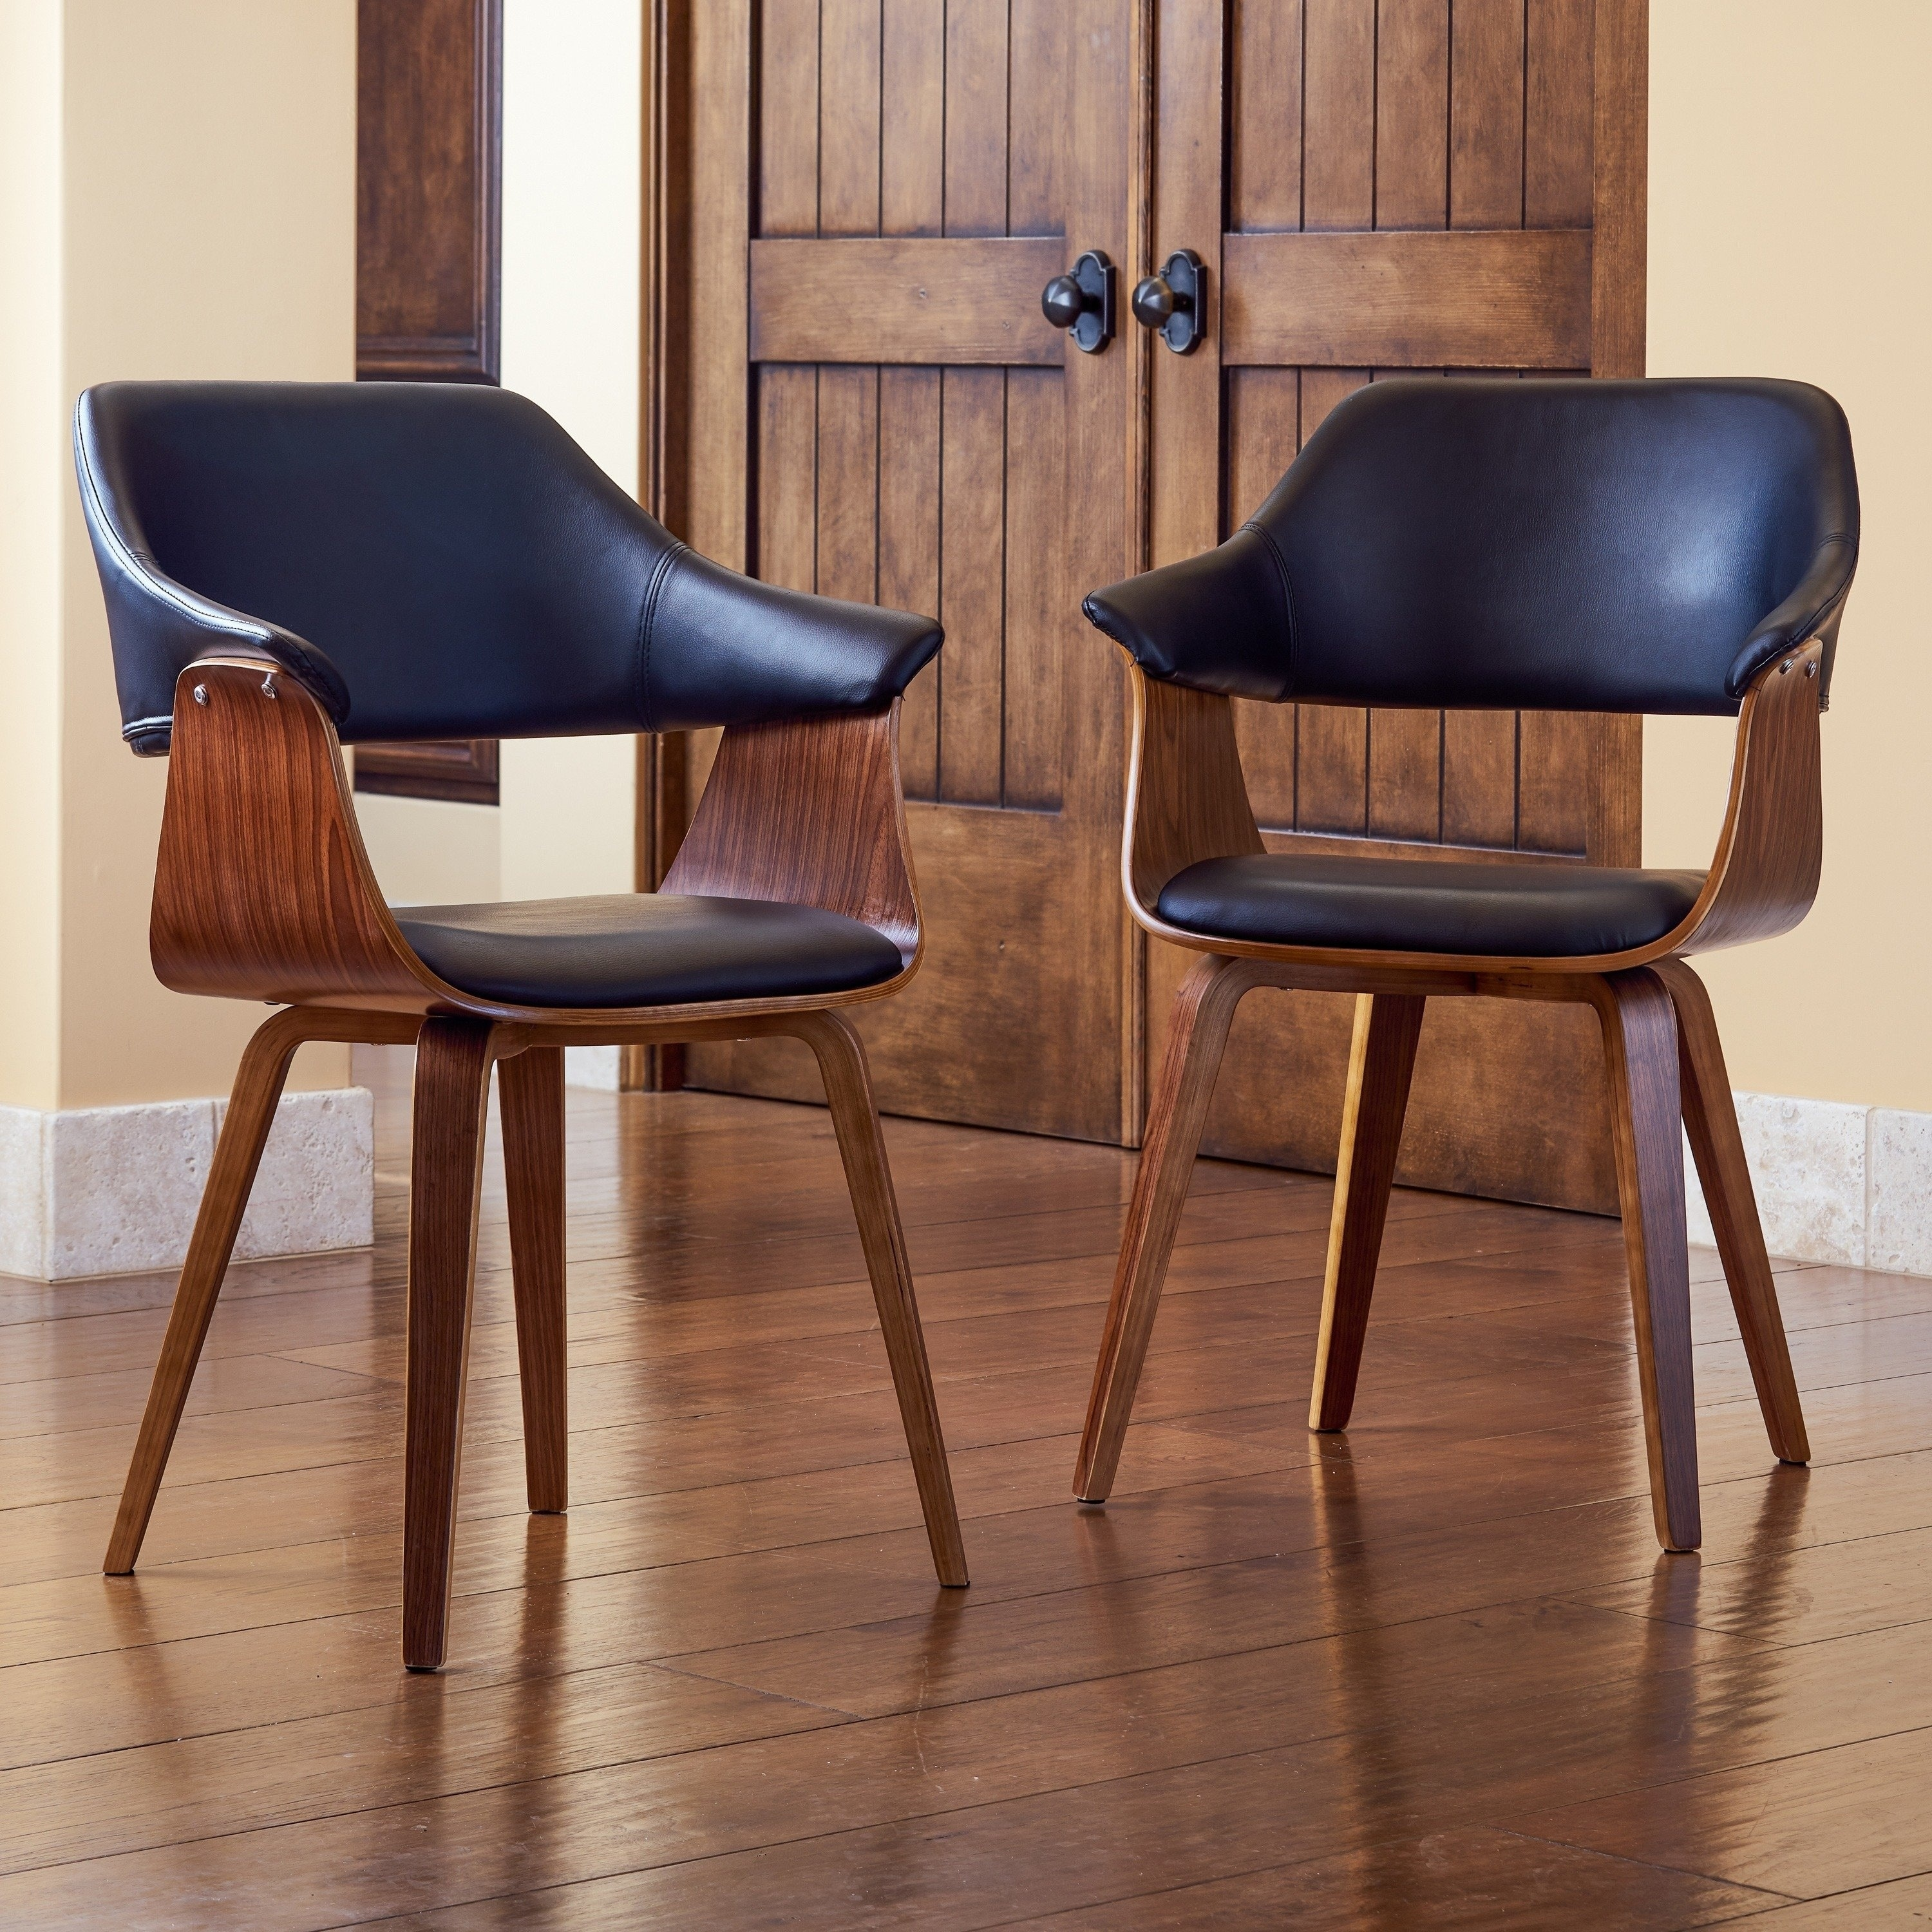 Corvus Norah Mid Century Modern Accent Chairs With Wood Legs Set Of 2